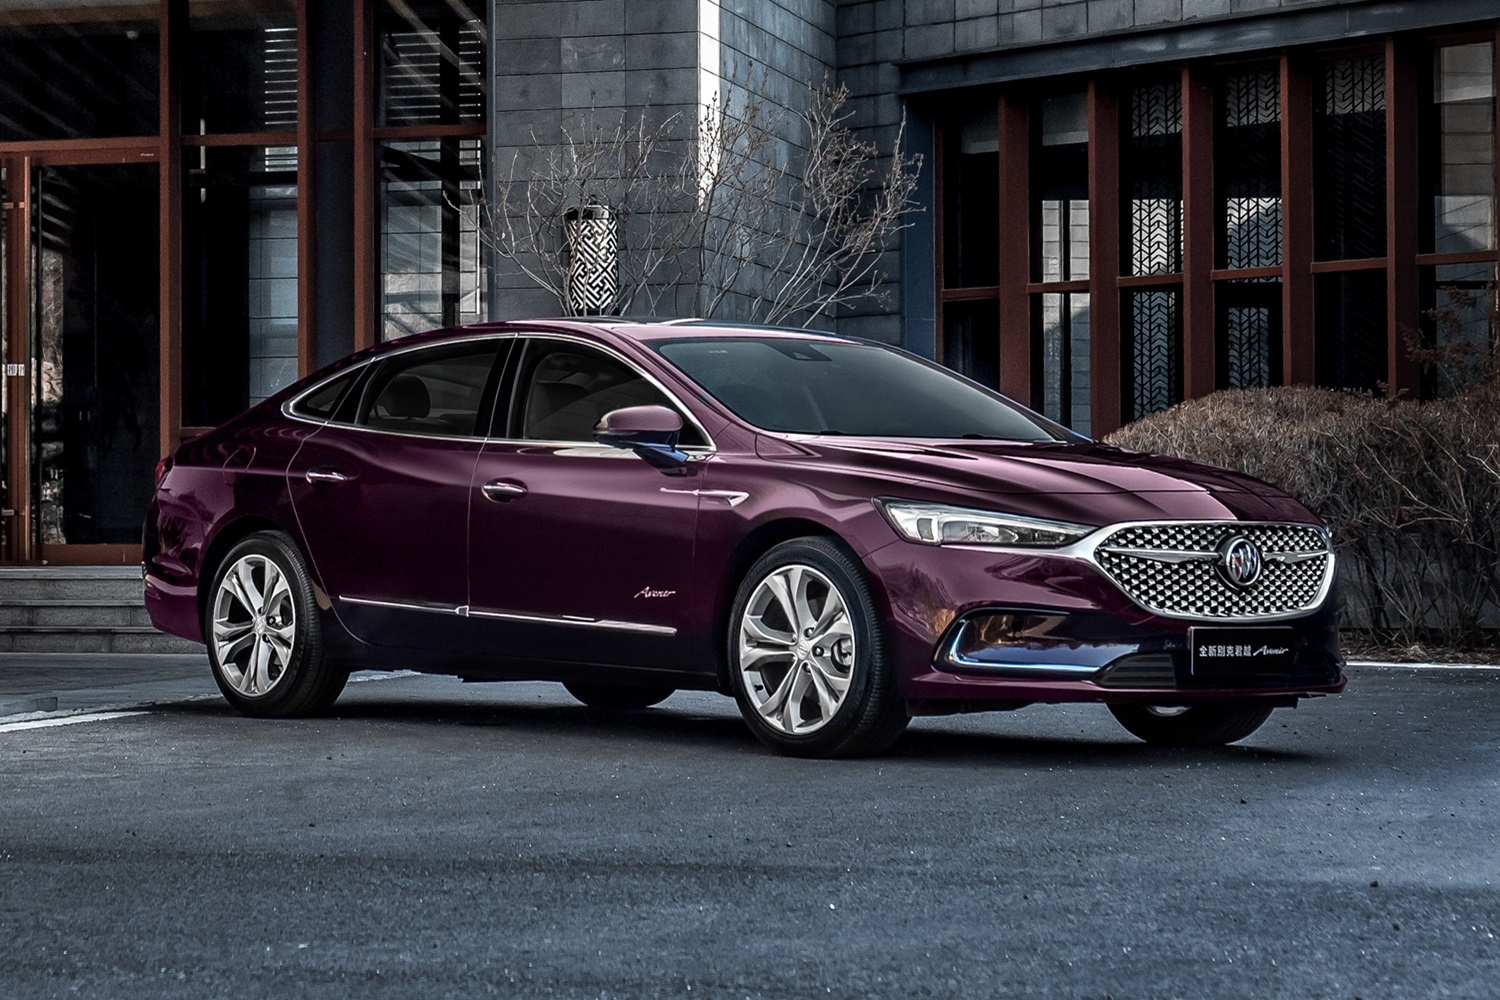 2021 Buick Lacrosse Gets More Refined Than Ever | Gm Authority Price Of A 2021 Buick Lacrosse